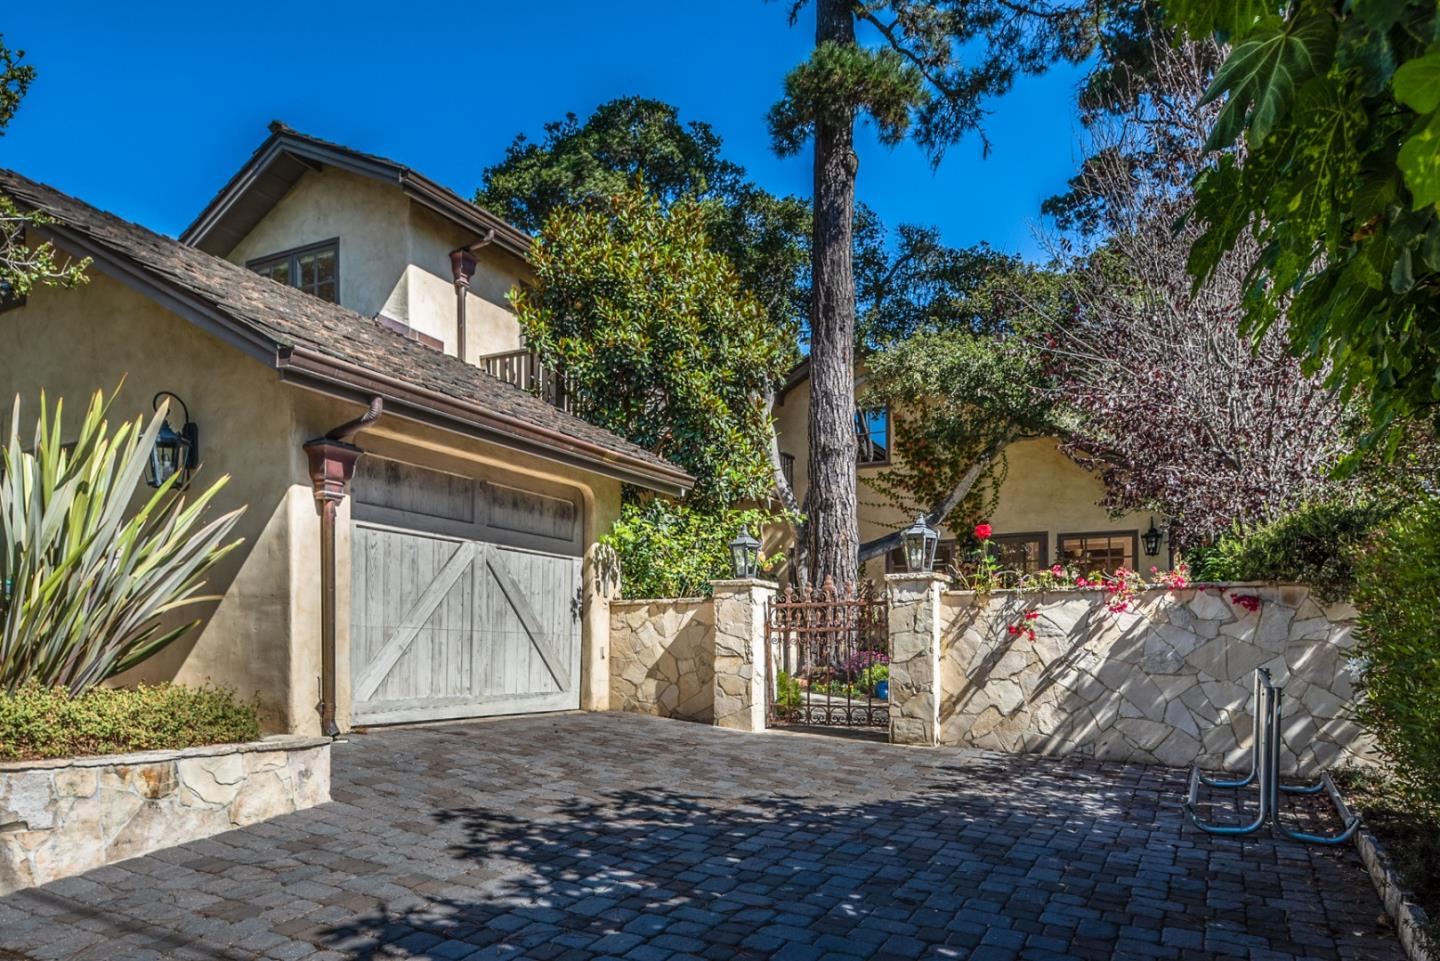 0 Guadalupe 5 Se Of 7th Carmel Ca 93921 Sotheby S